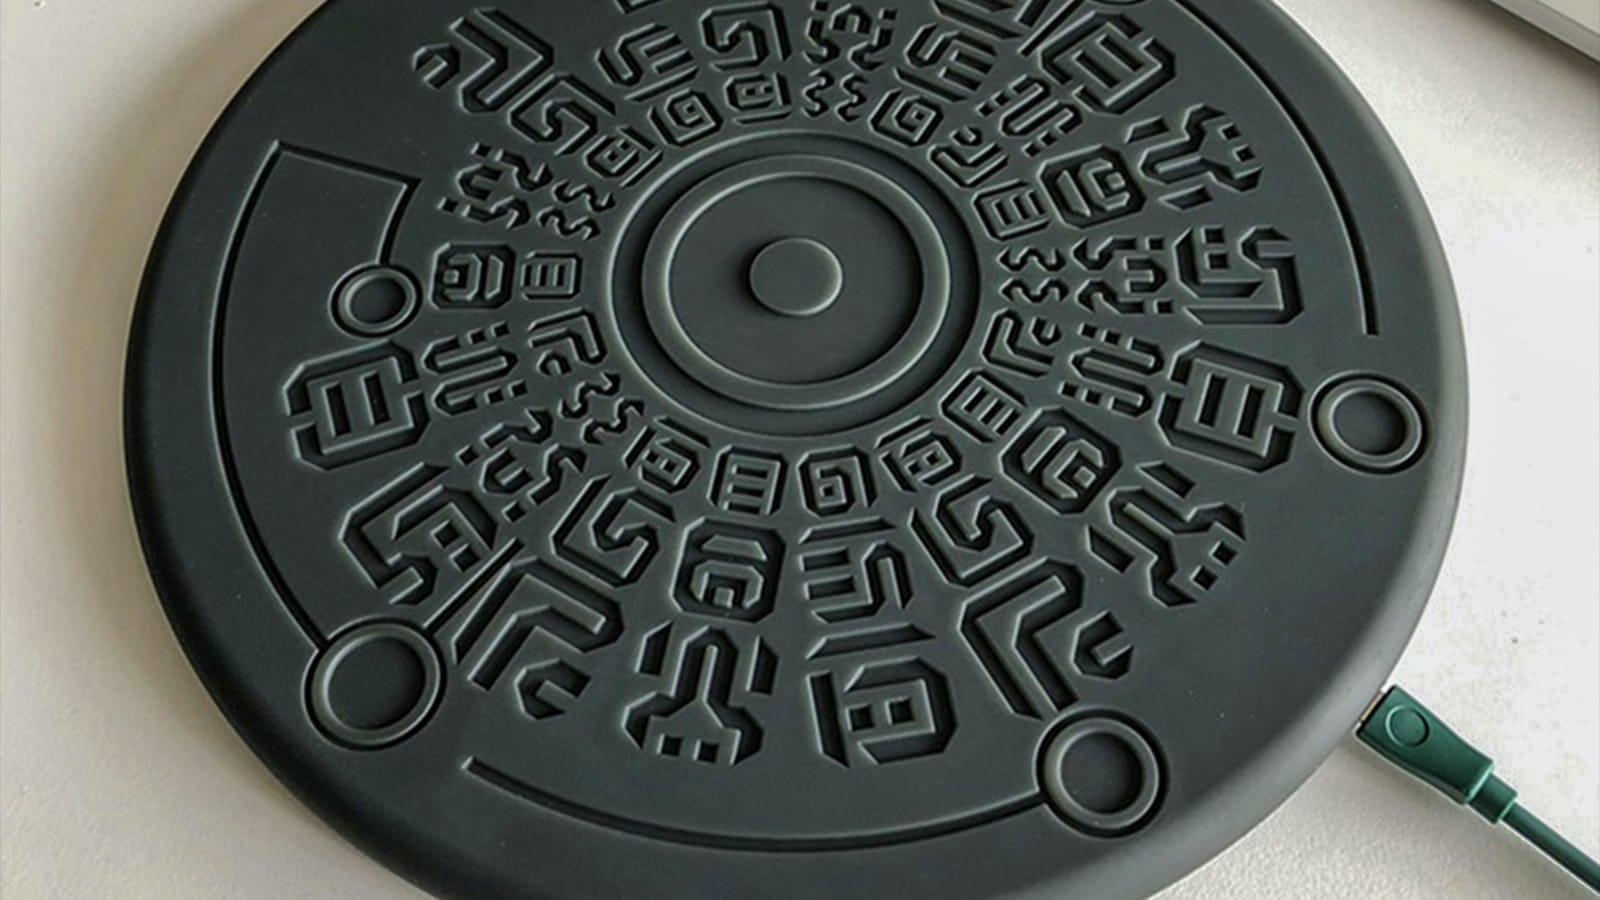 Legend of Zelda Sheikah Runes Qi Wireless Fast Charger delivers 10 watts to your phone